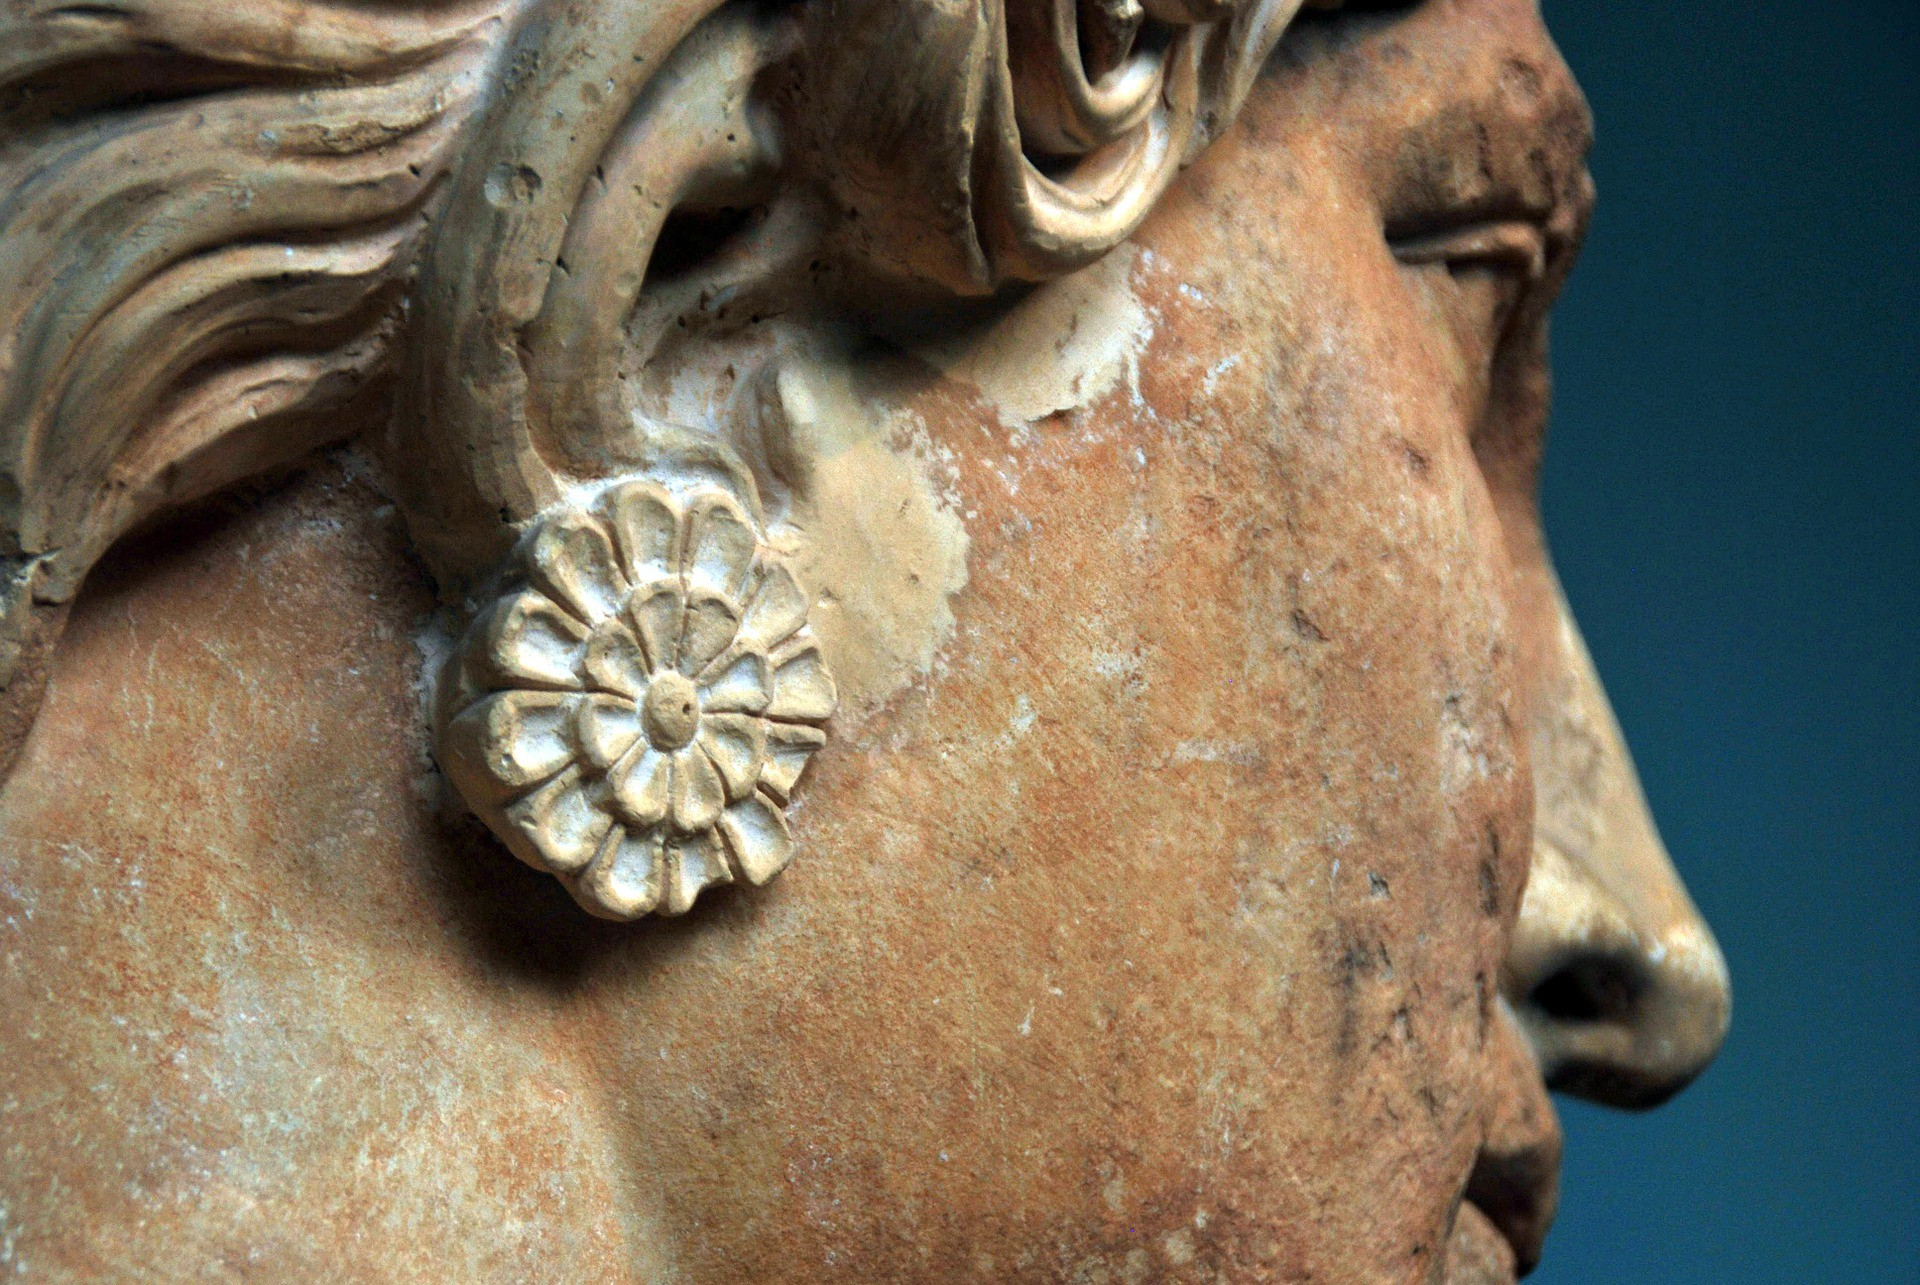 ancient Greek statue of a woman's face in profile